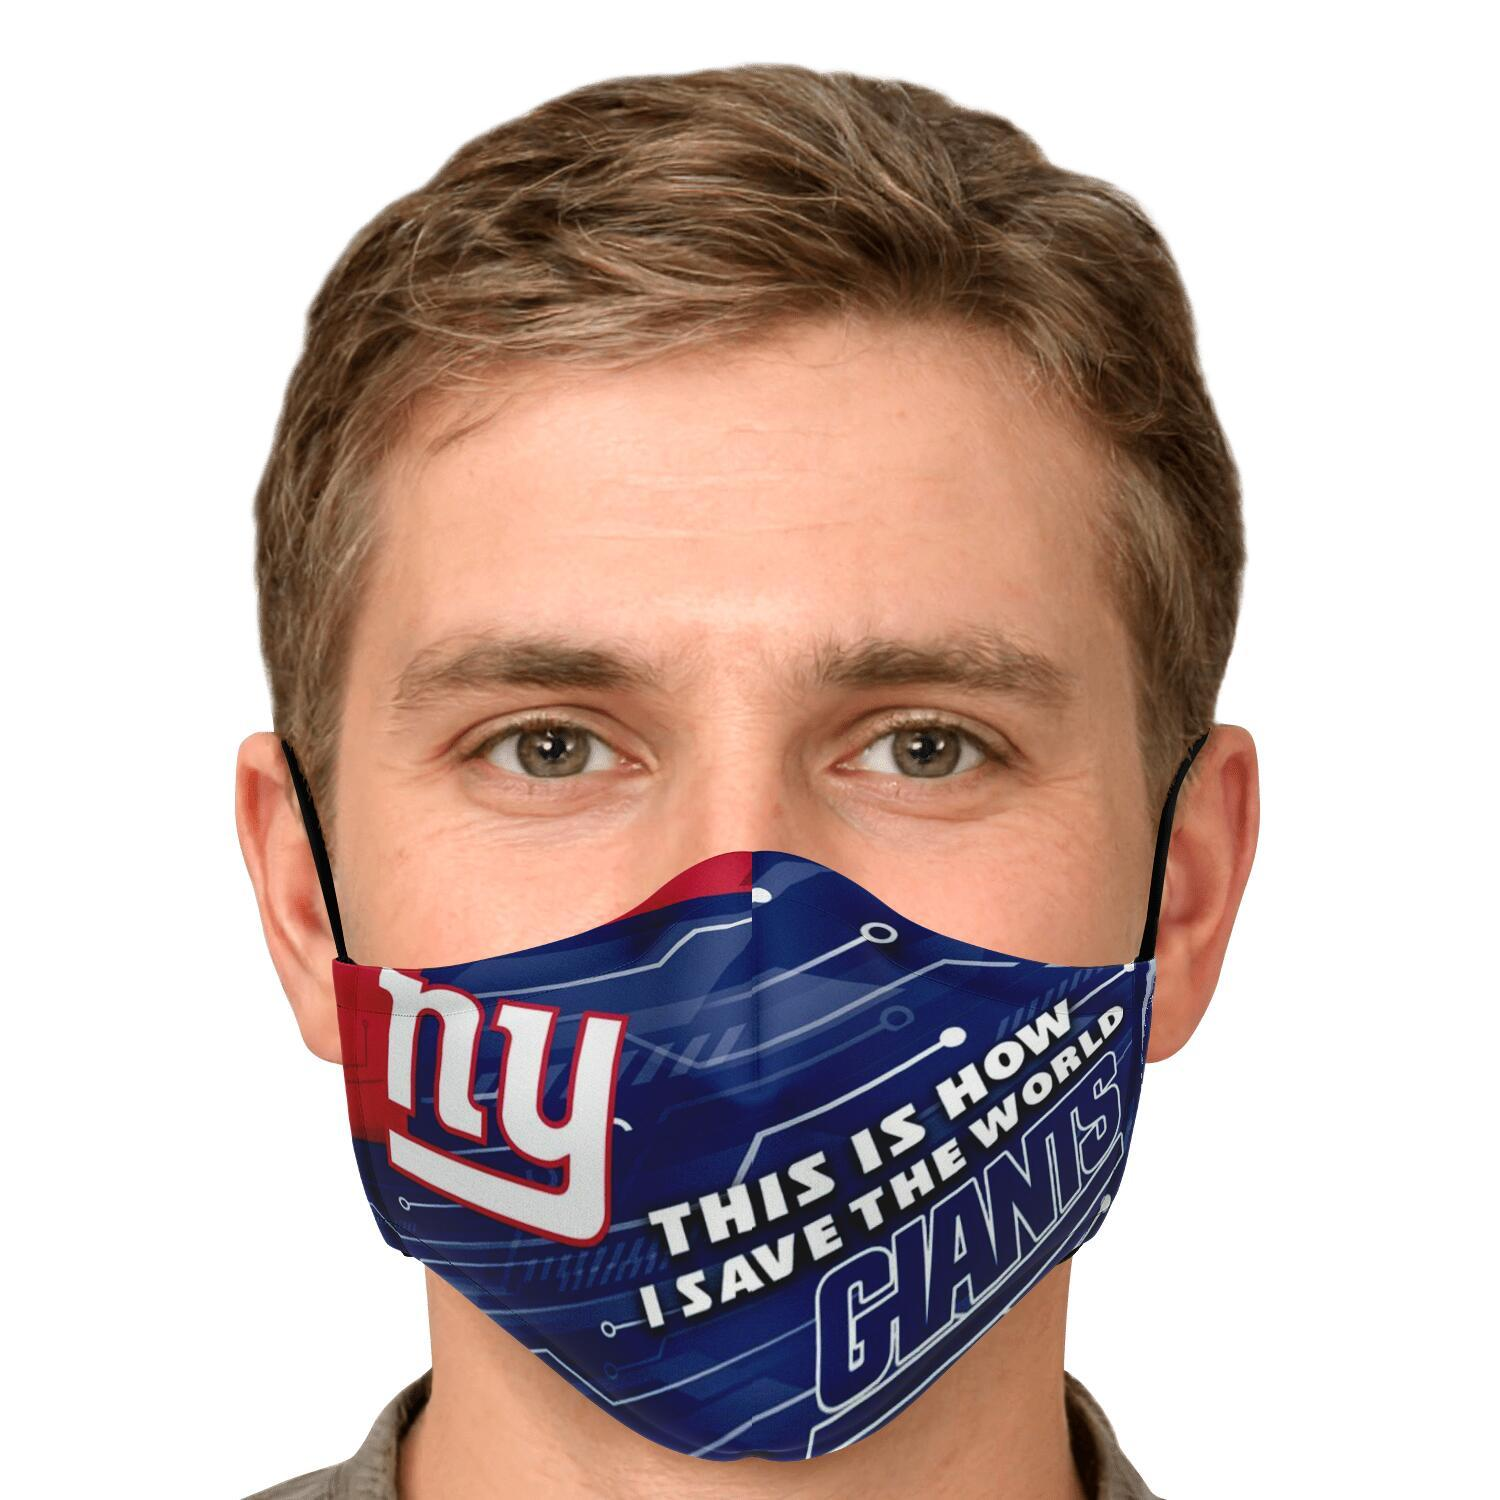 This Is How I Save The World New York Giants Face Masks 9